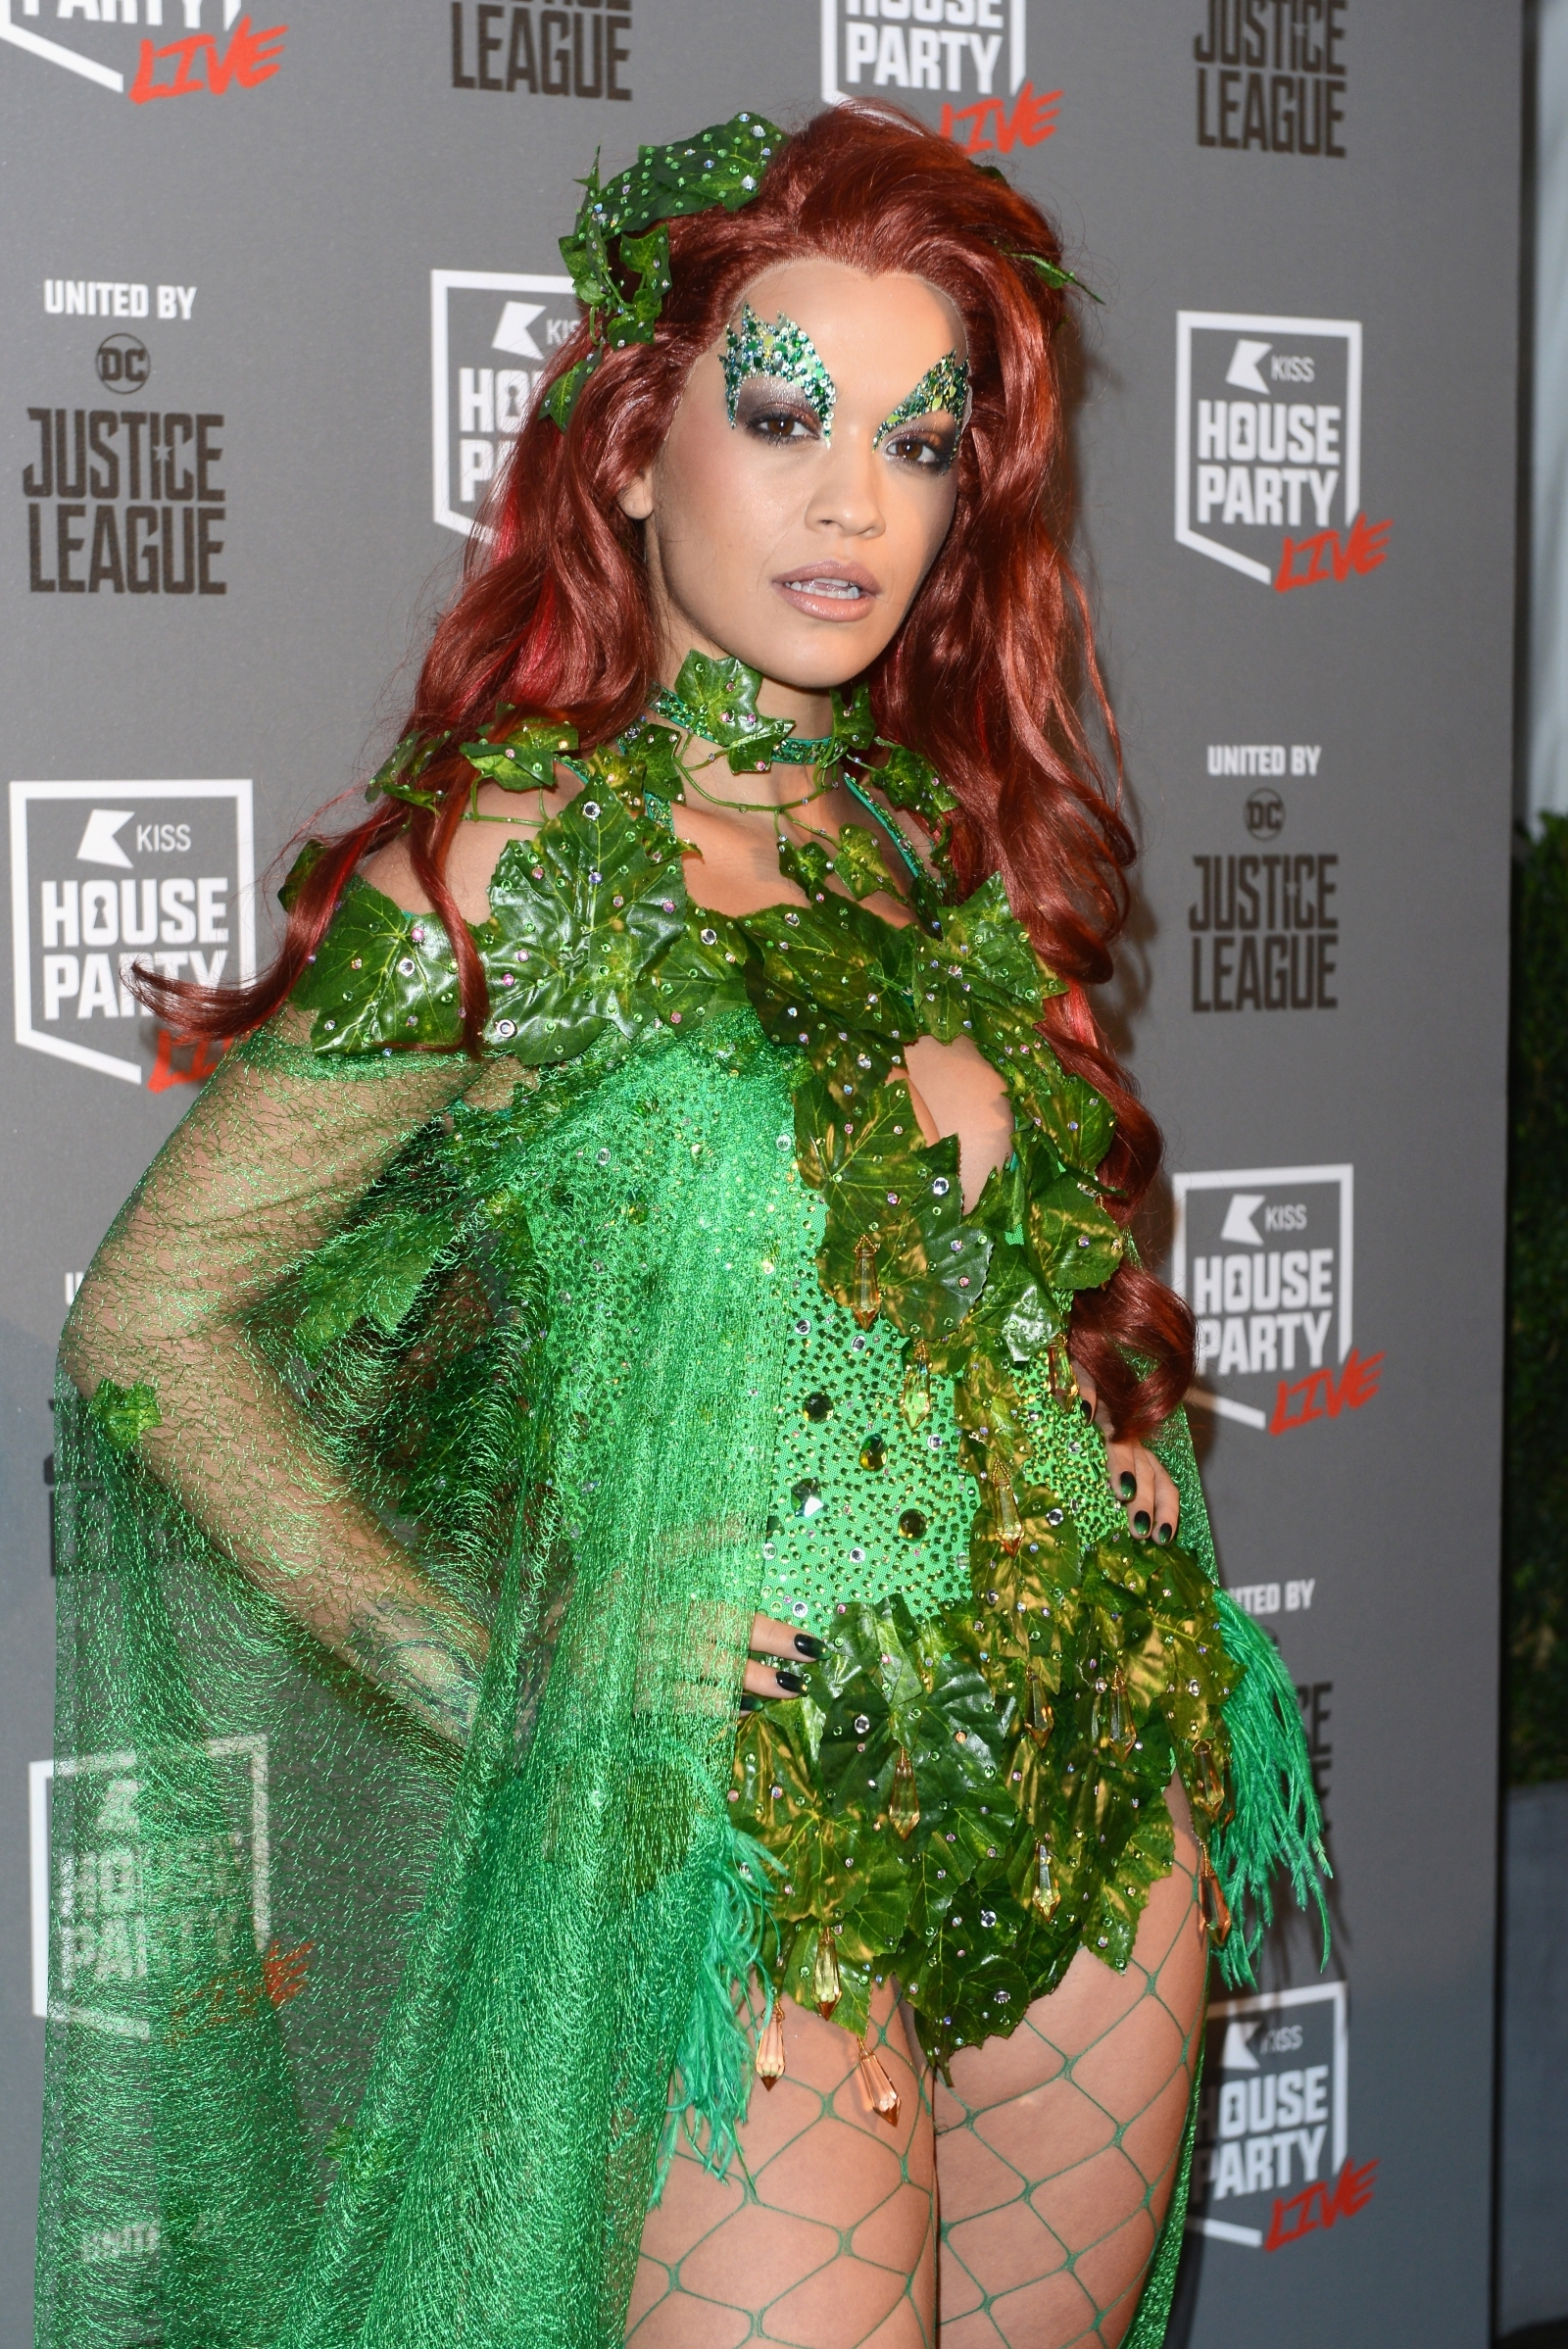 Rita Ora Fans Are Freaking Out Over Her Racy Poison Ivy